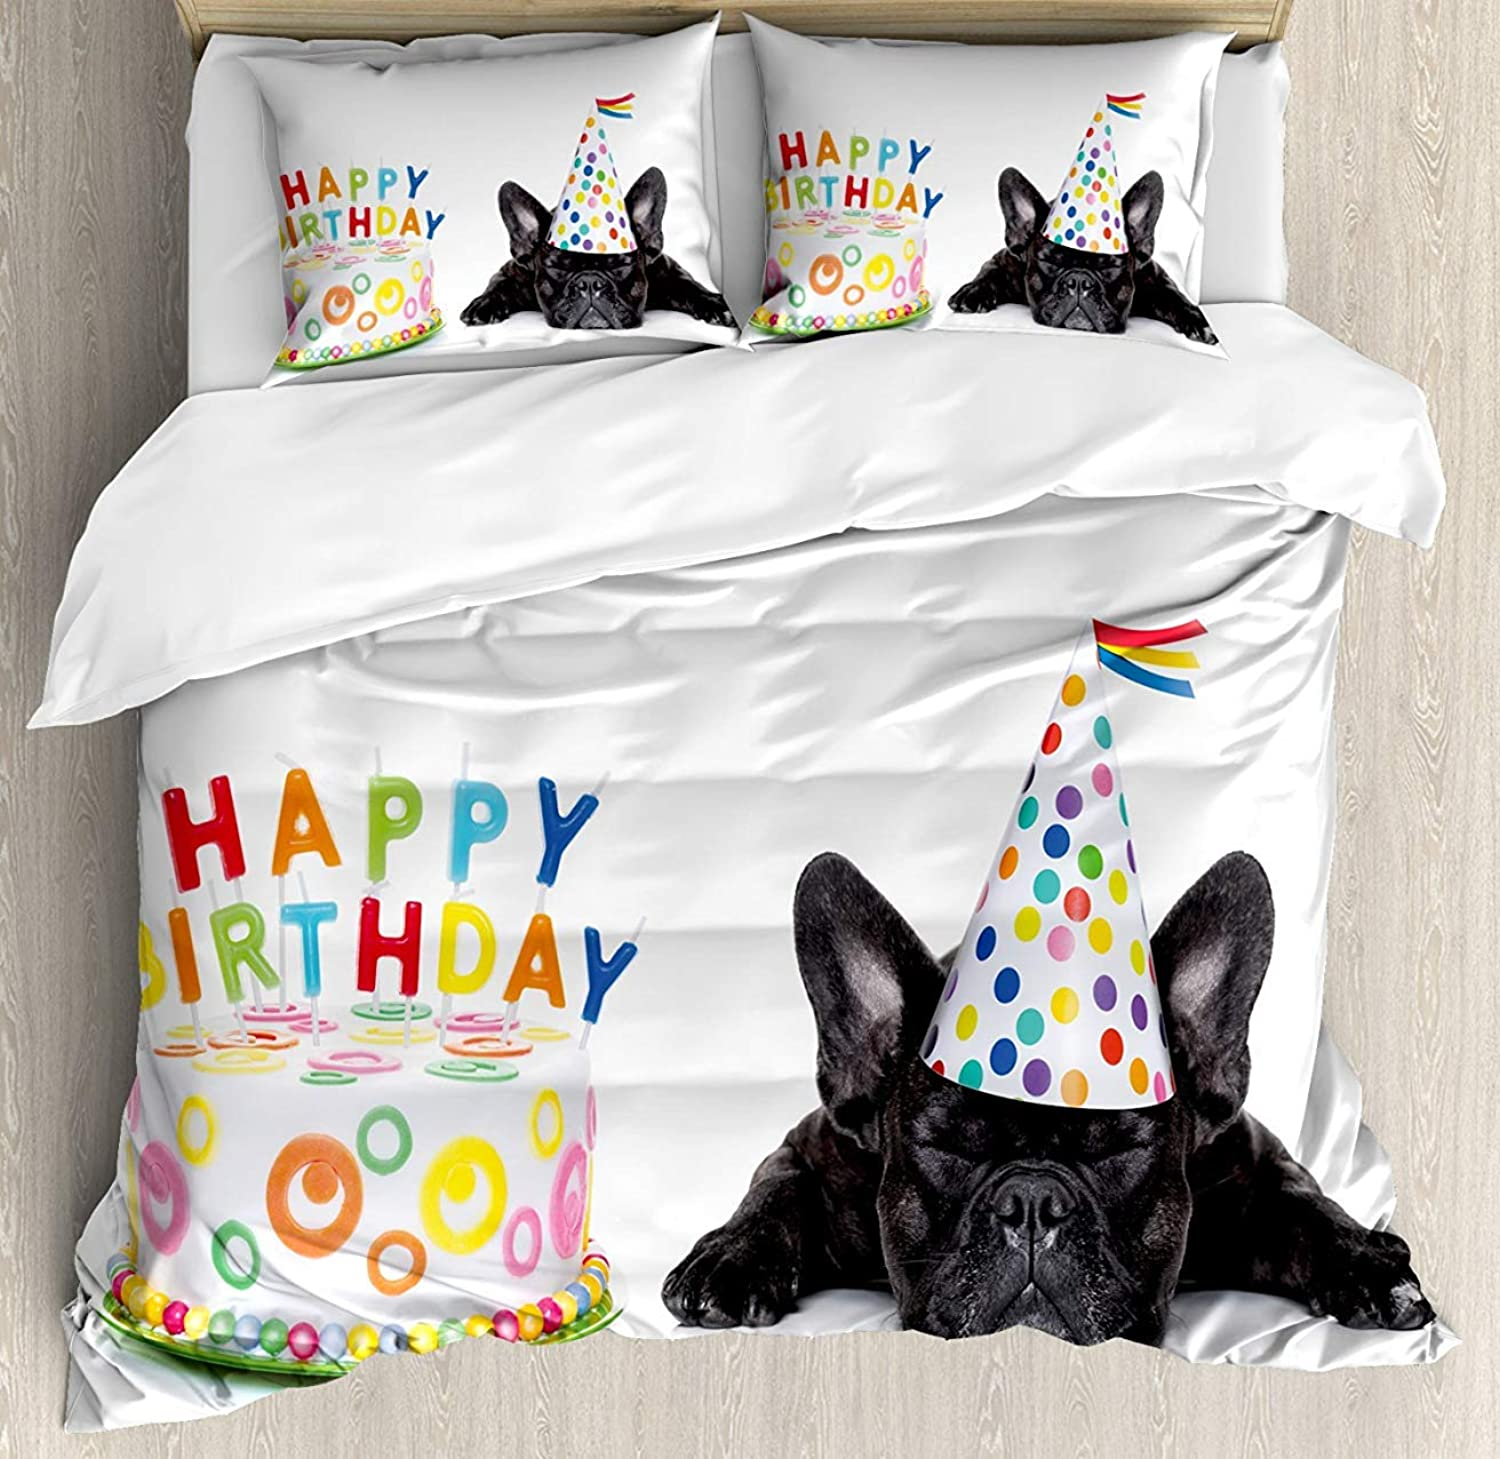 Kids Birthday 4pcs Bed Set Sleepy French Bulldog Party Cake with Candles Cone Hat Celebration Image Bedding Sets Duvet Cover Flat Sheet No Comforter with Decorative Pillow Shams for Kids Adults Teens